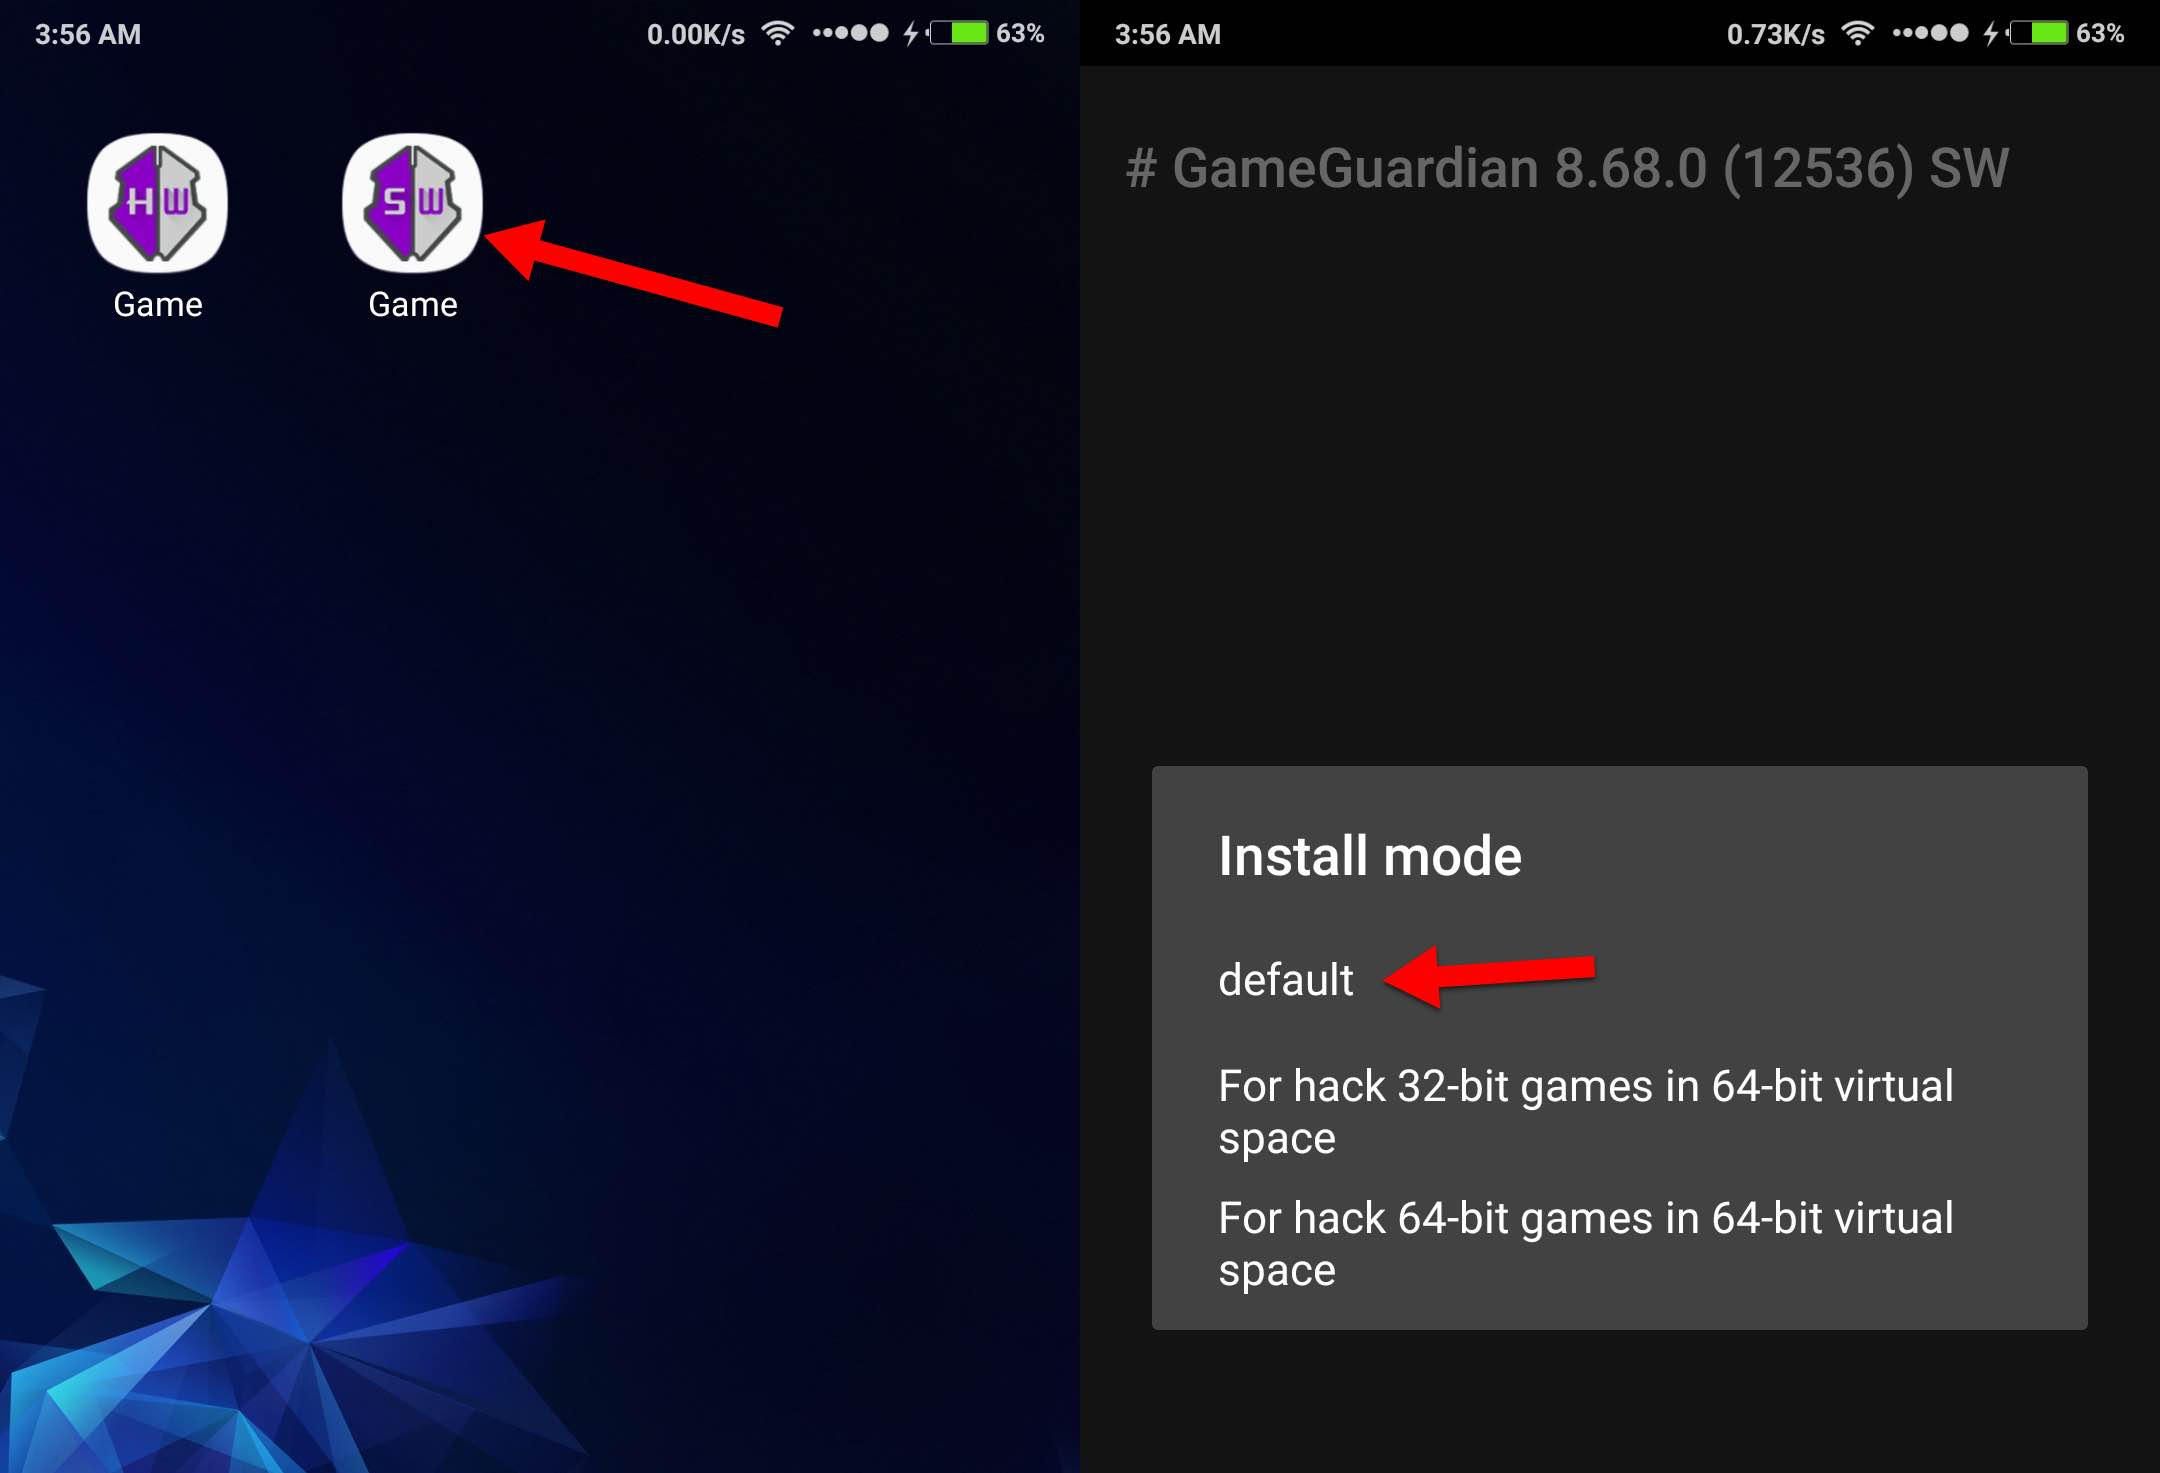 cara install Gameguardian no root